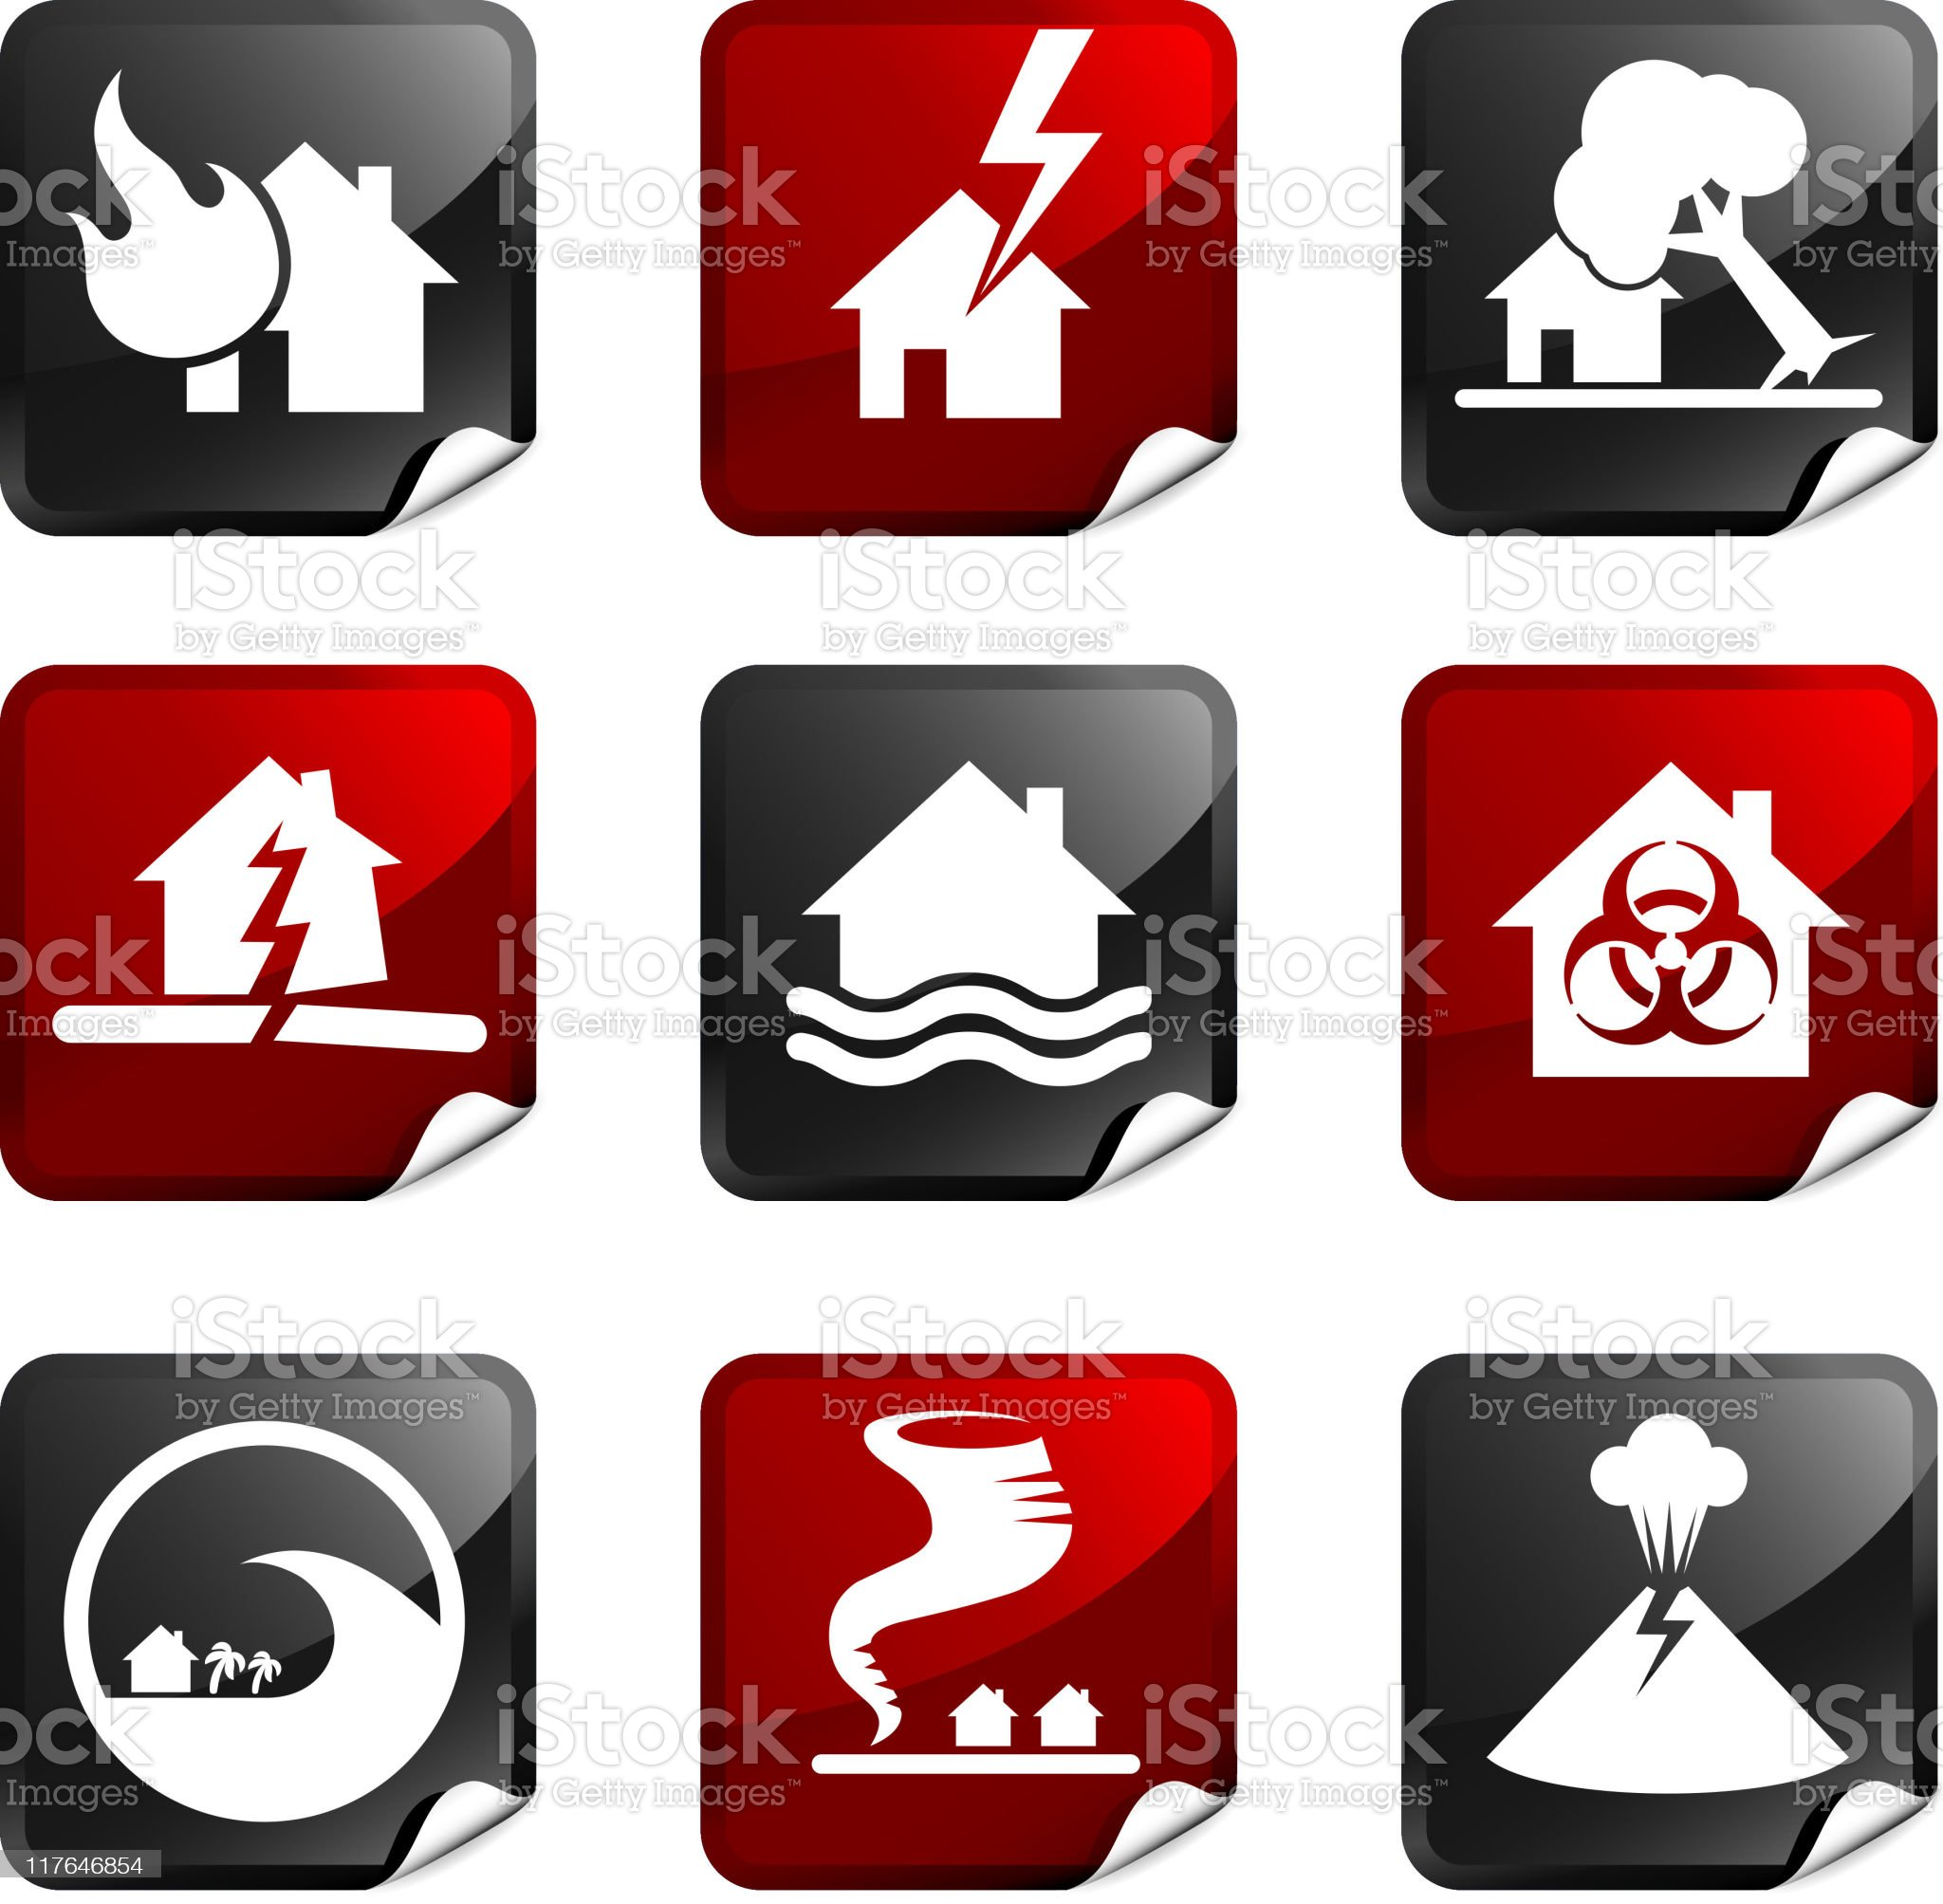 disaster royalty free icons royalty-free stock vector art